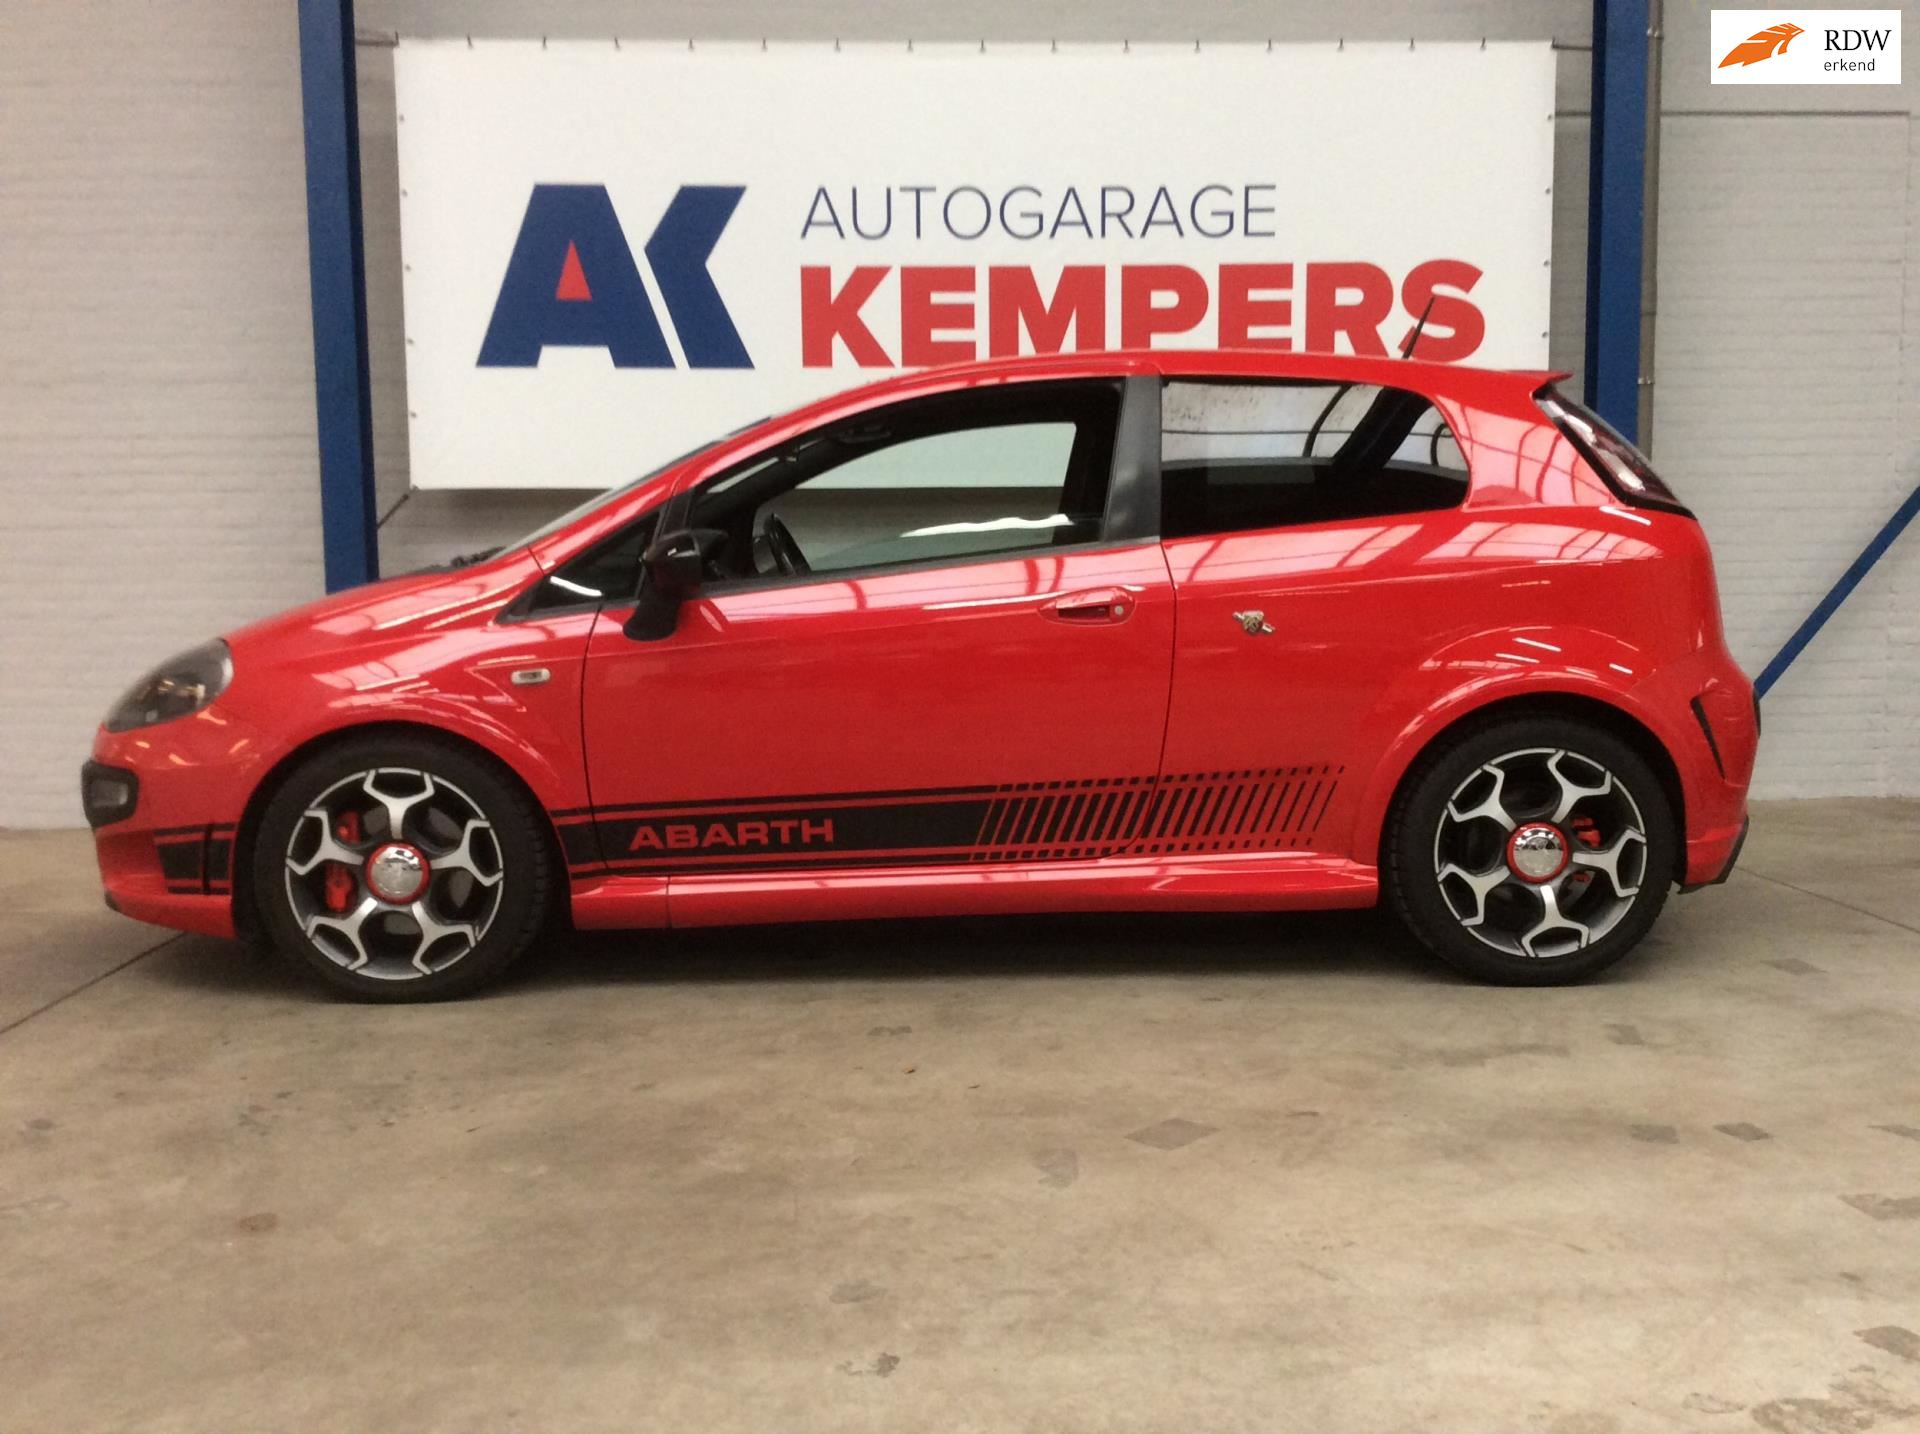 Fiat Punto Evo occasion - Handelsonderneming P. Kempers